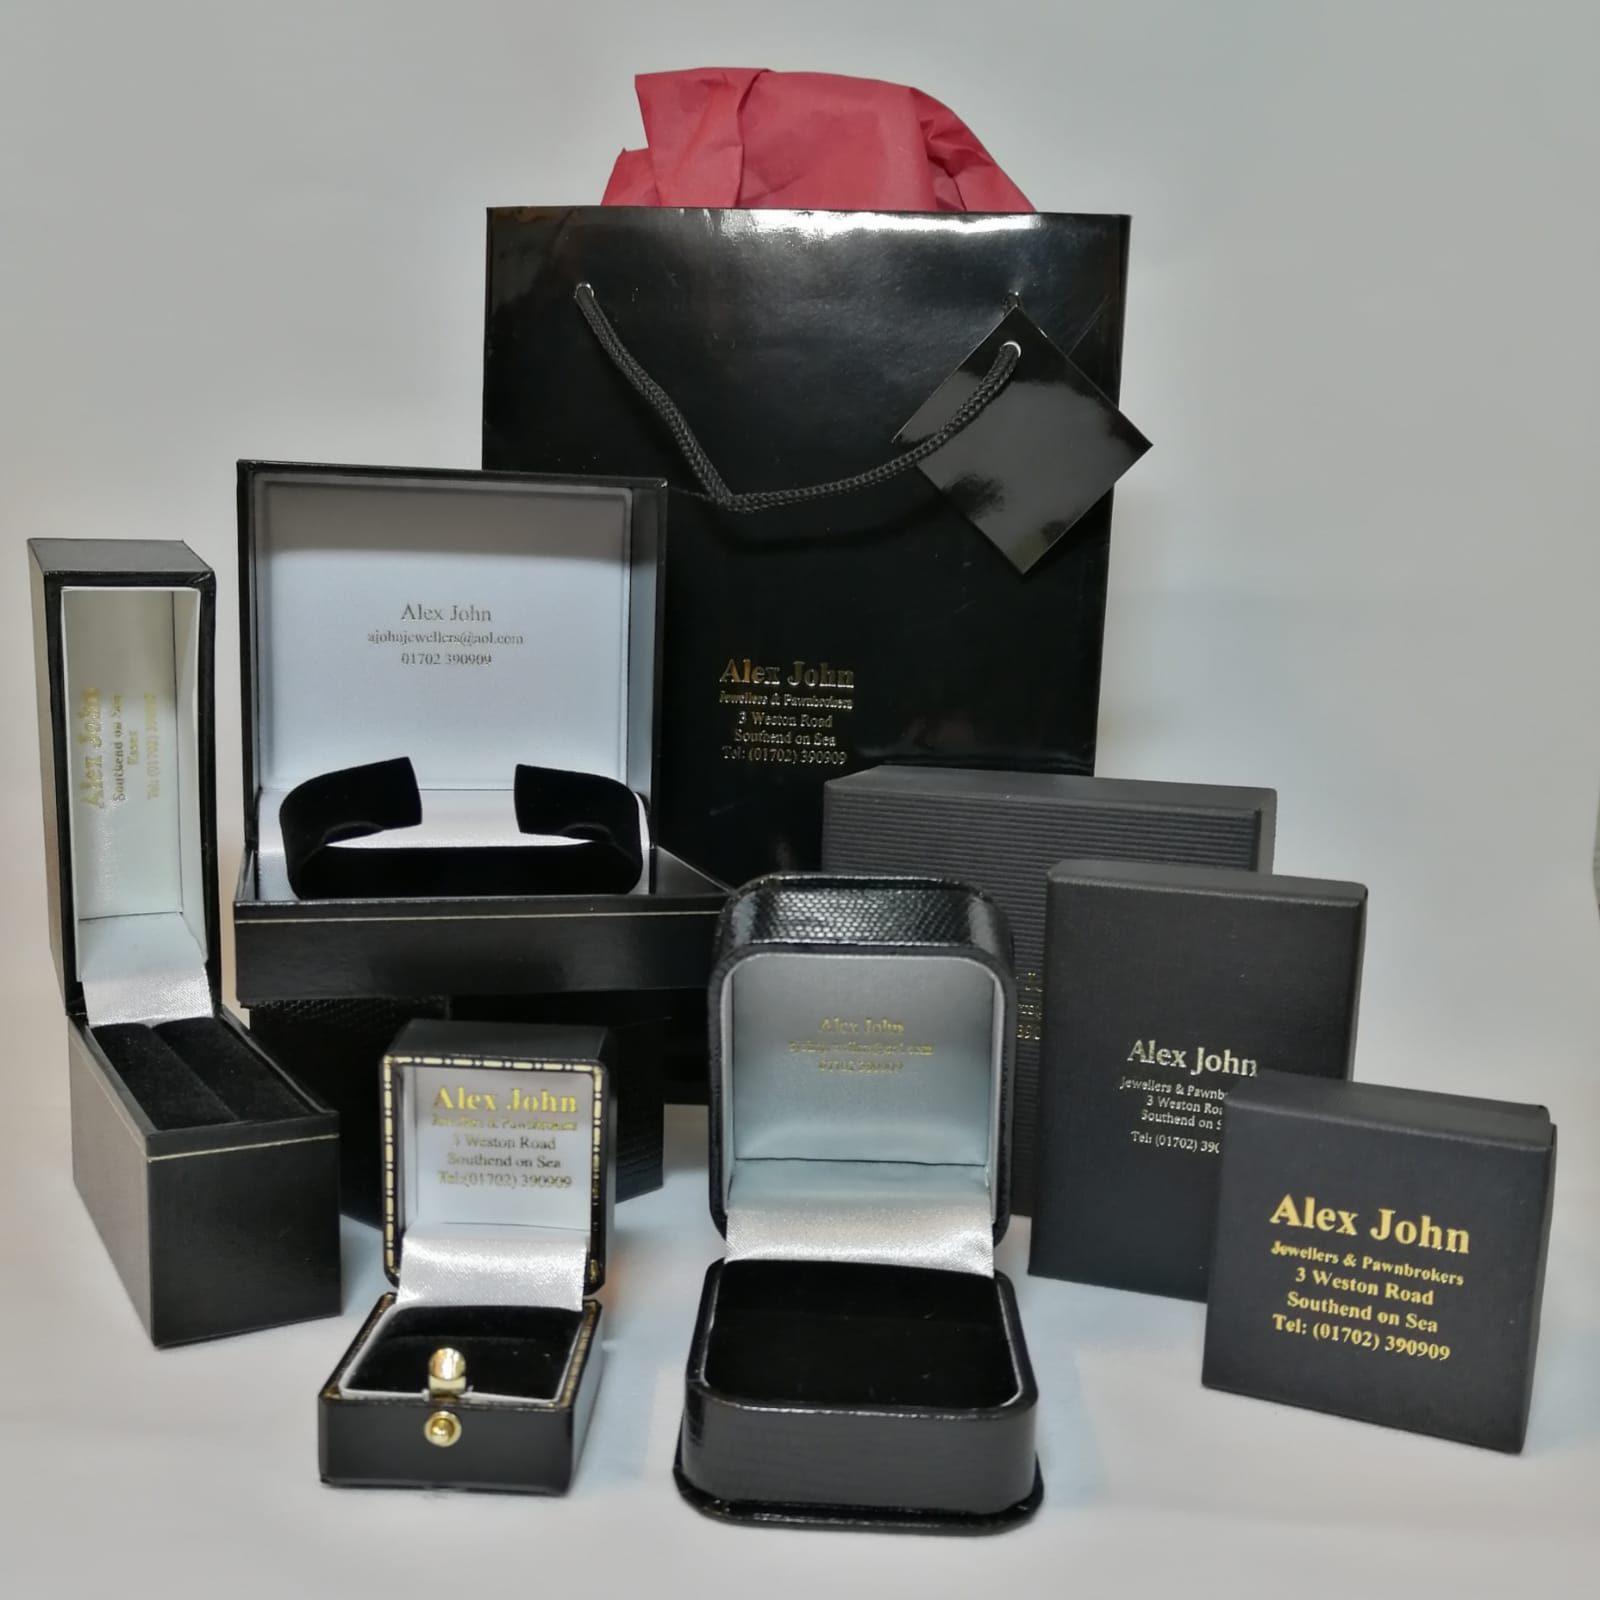 Alex John Jewellery Boxes